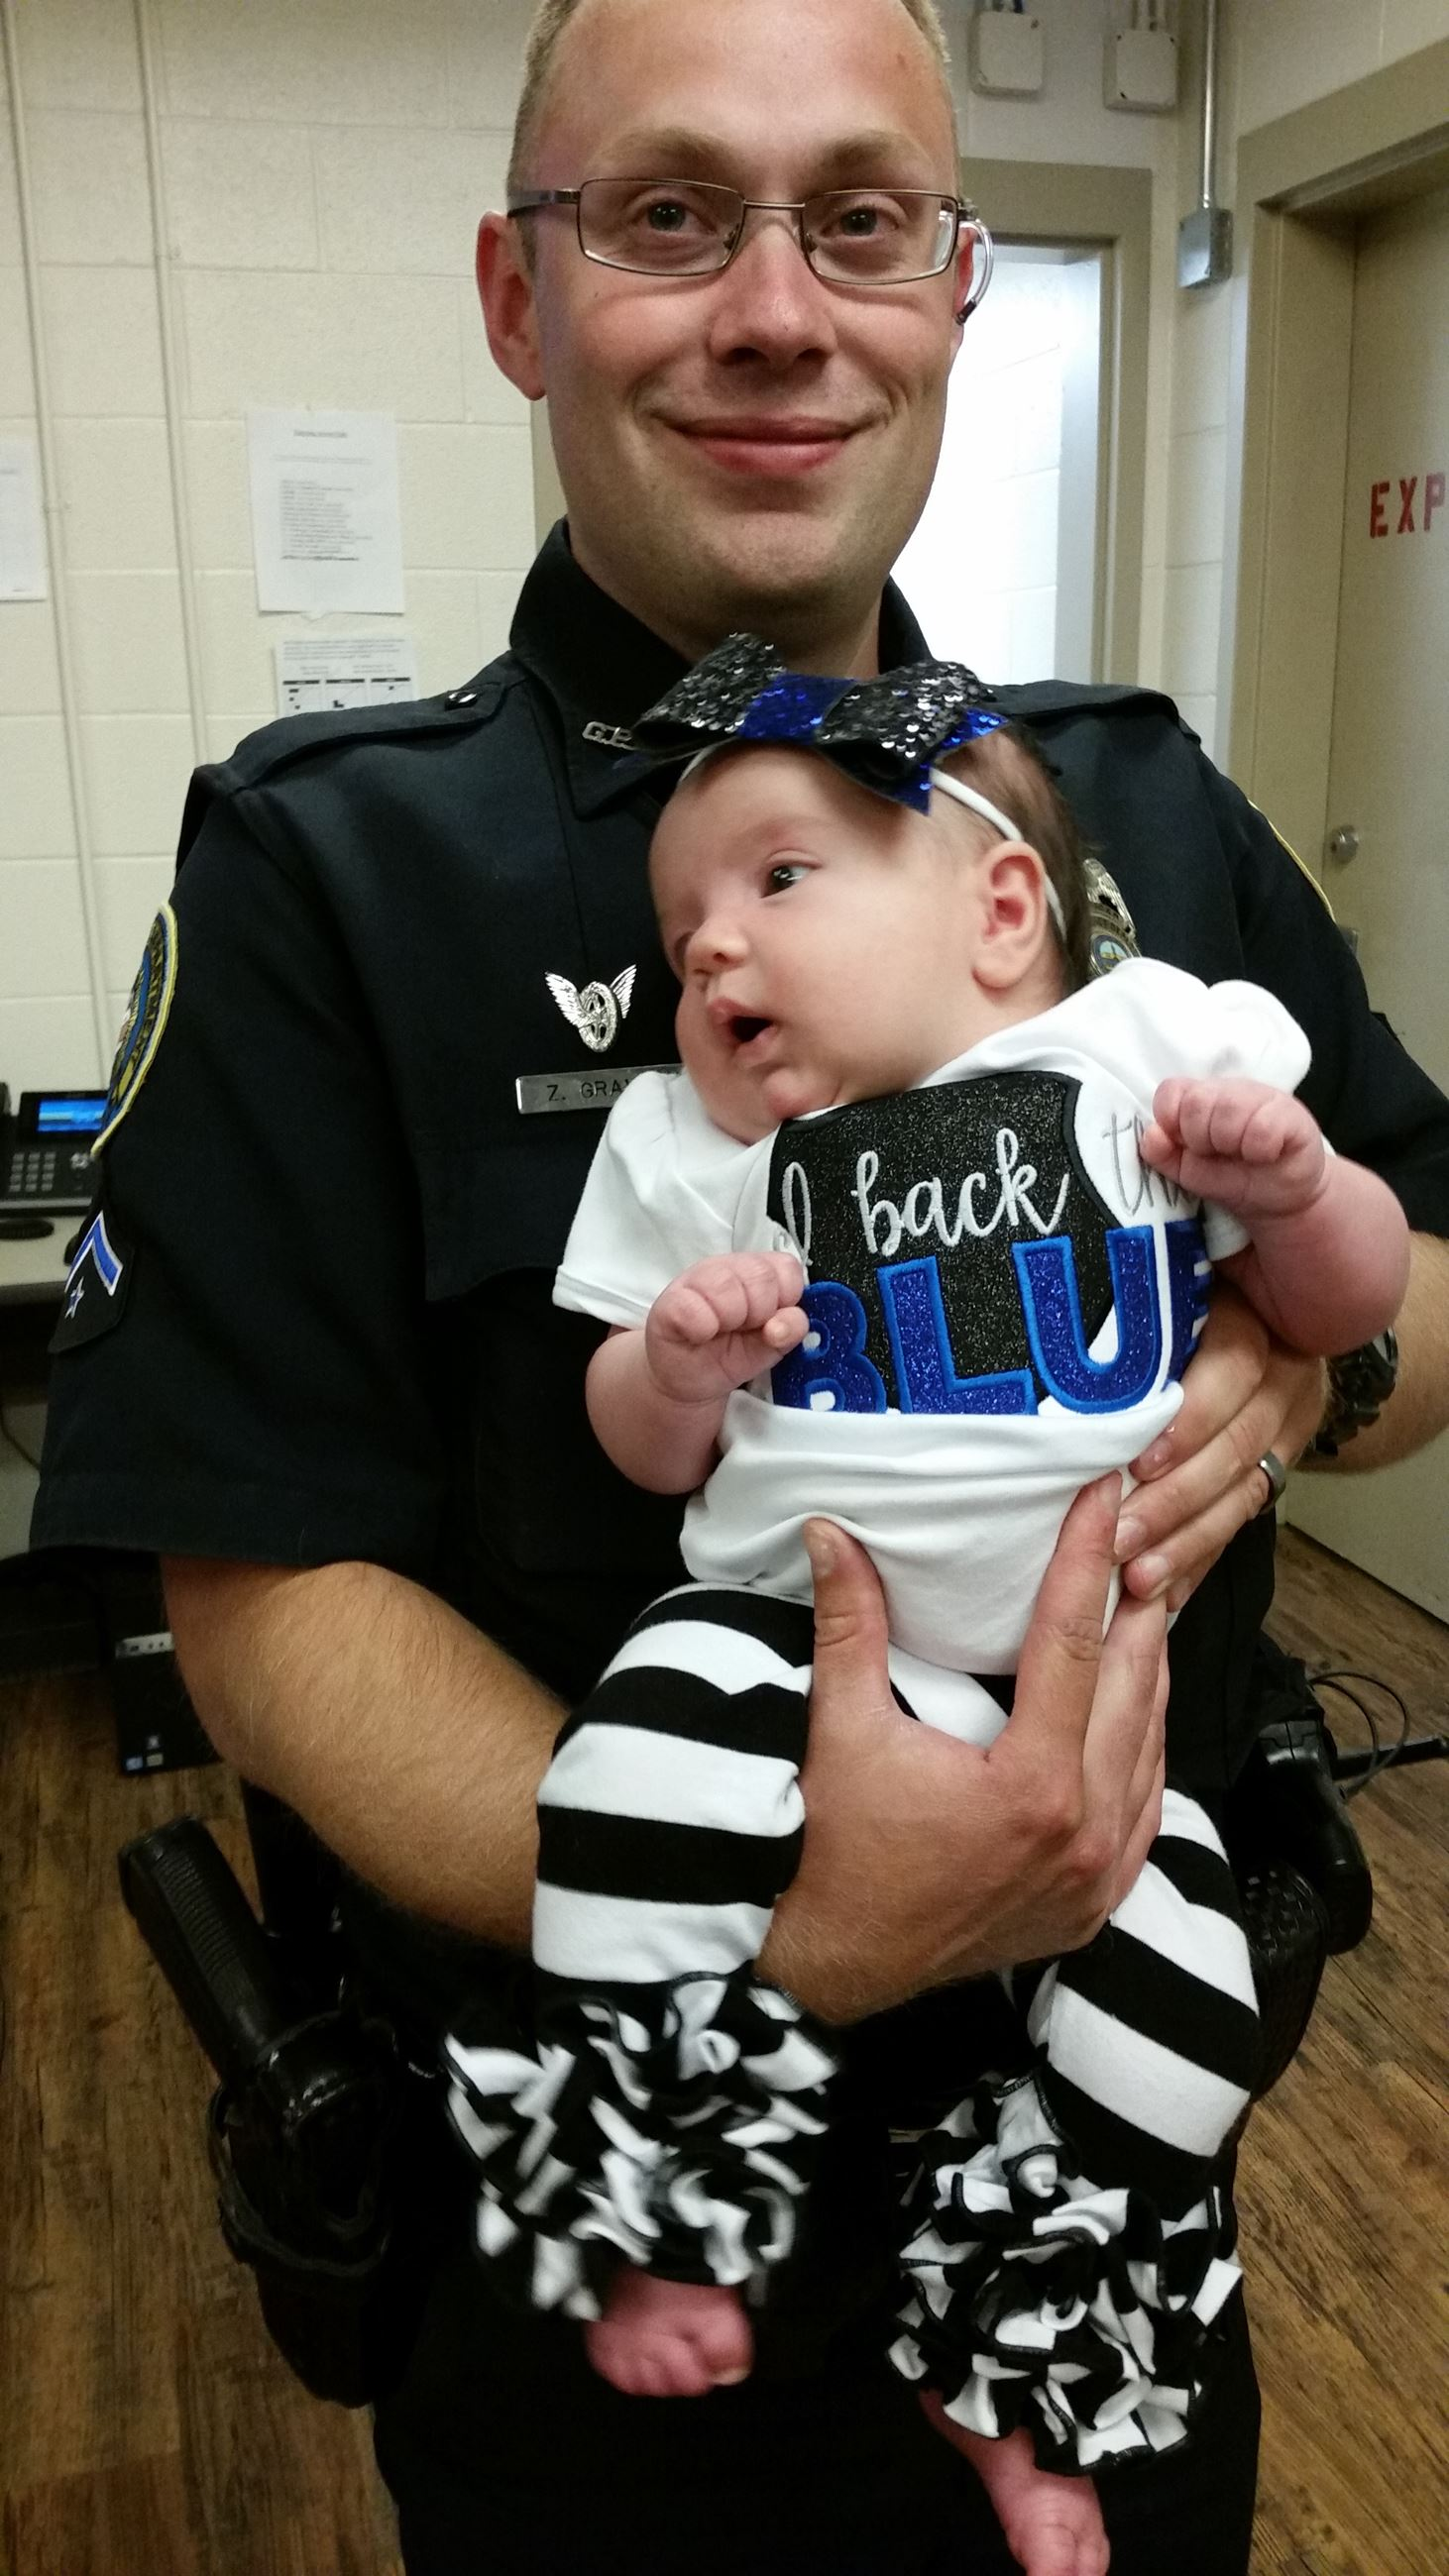 Officer holding baby